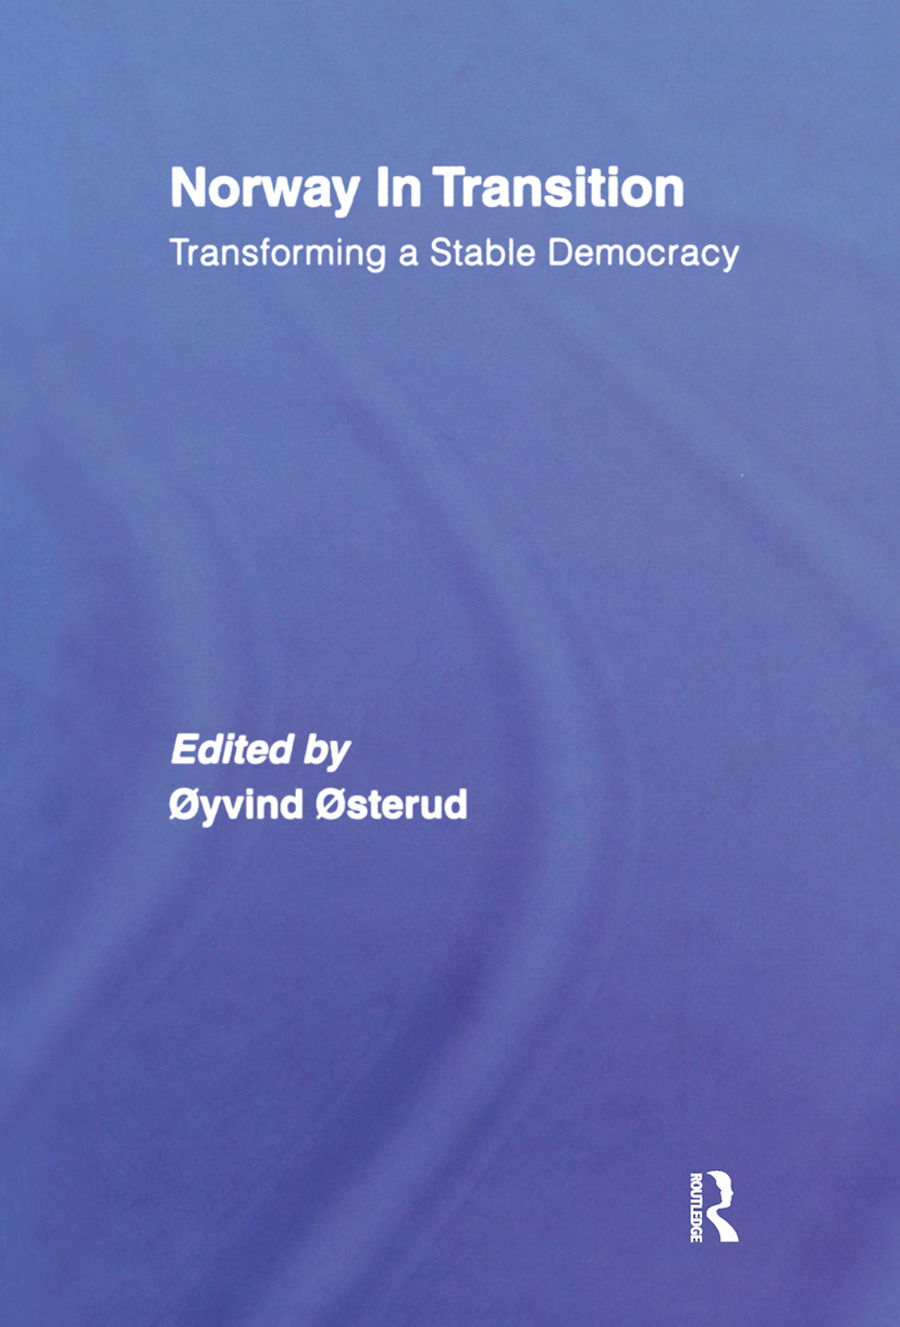 Norway in Transition: Transforming a Stable Democracy book cover